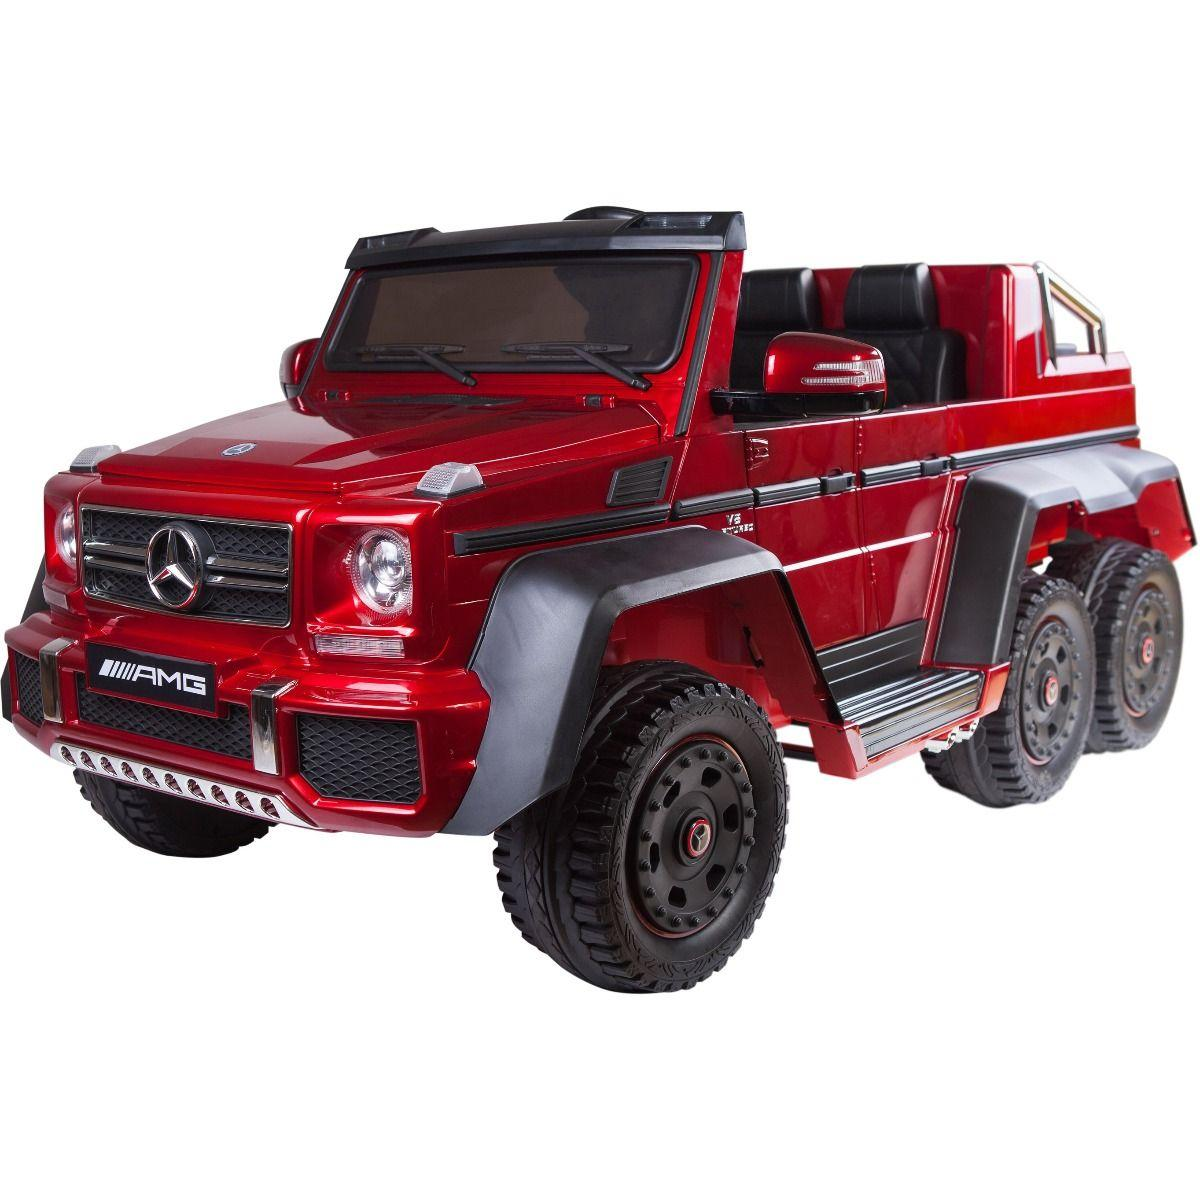 Licensed Mercedes G63 Amg G Wagon 6 X 6 Suv 12v Electric Battery Ride On Car Jeep Red